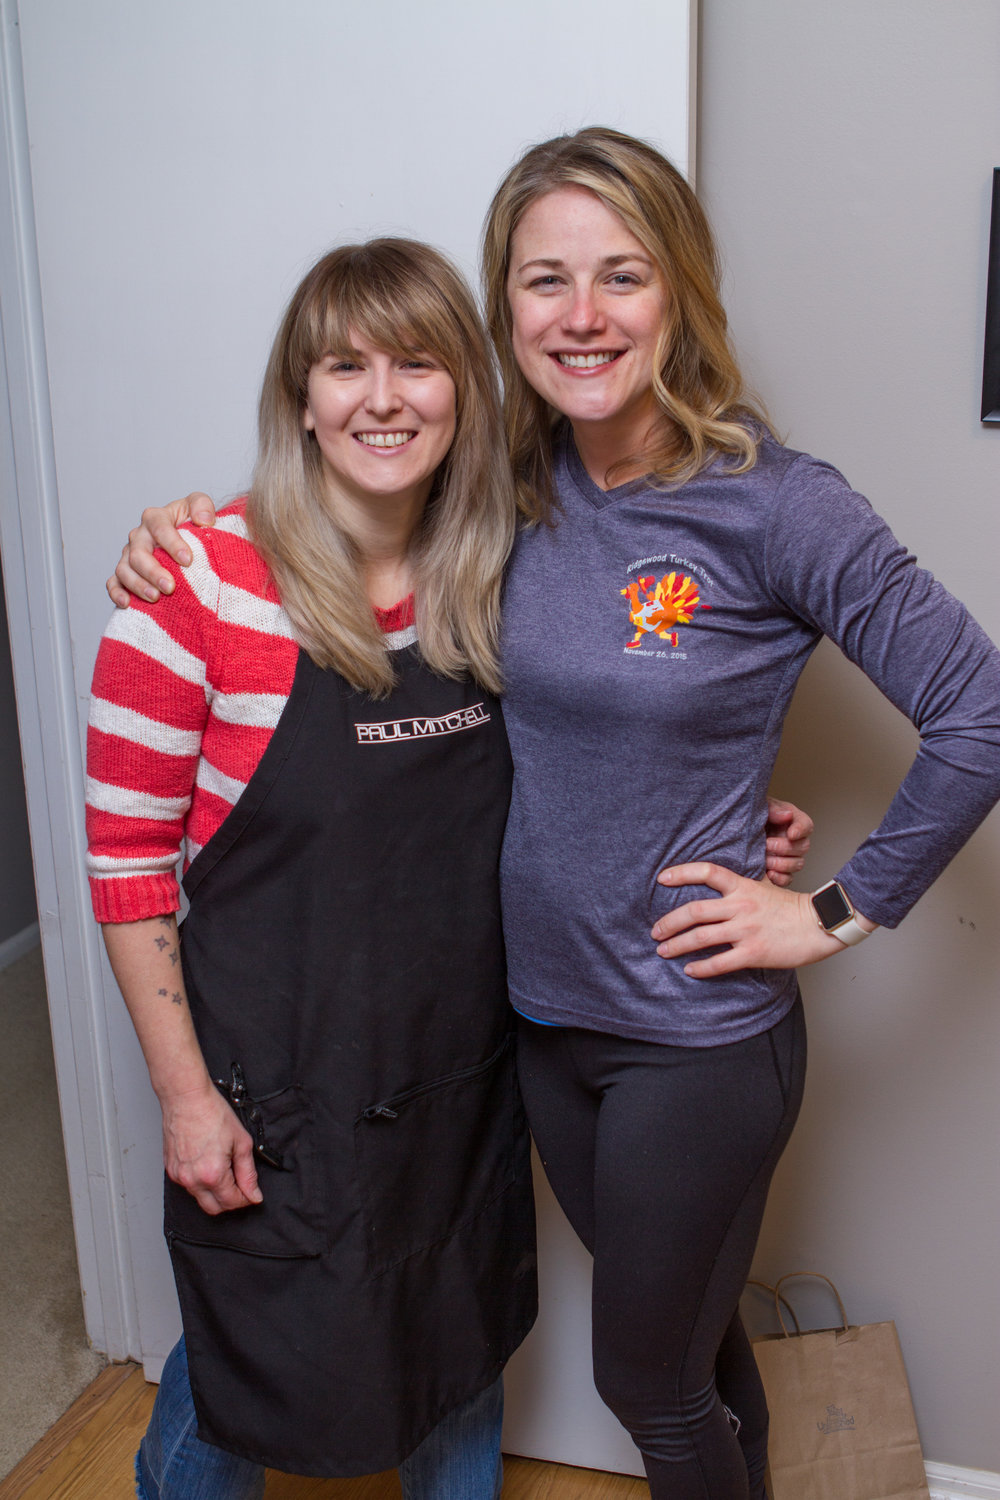 Post blow-out with Heather April 12, 2018!